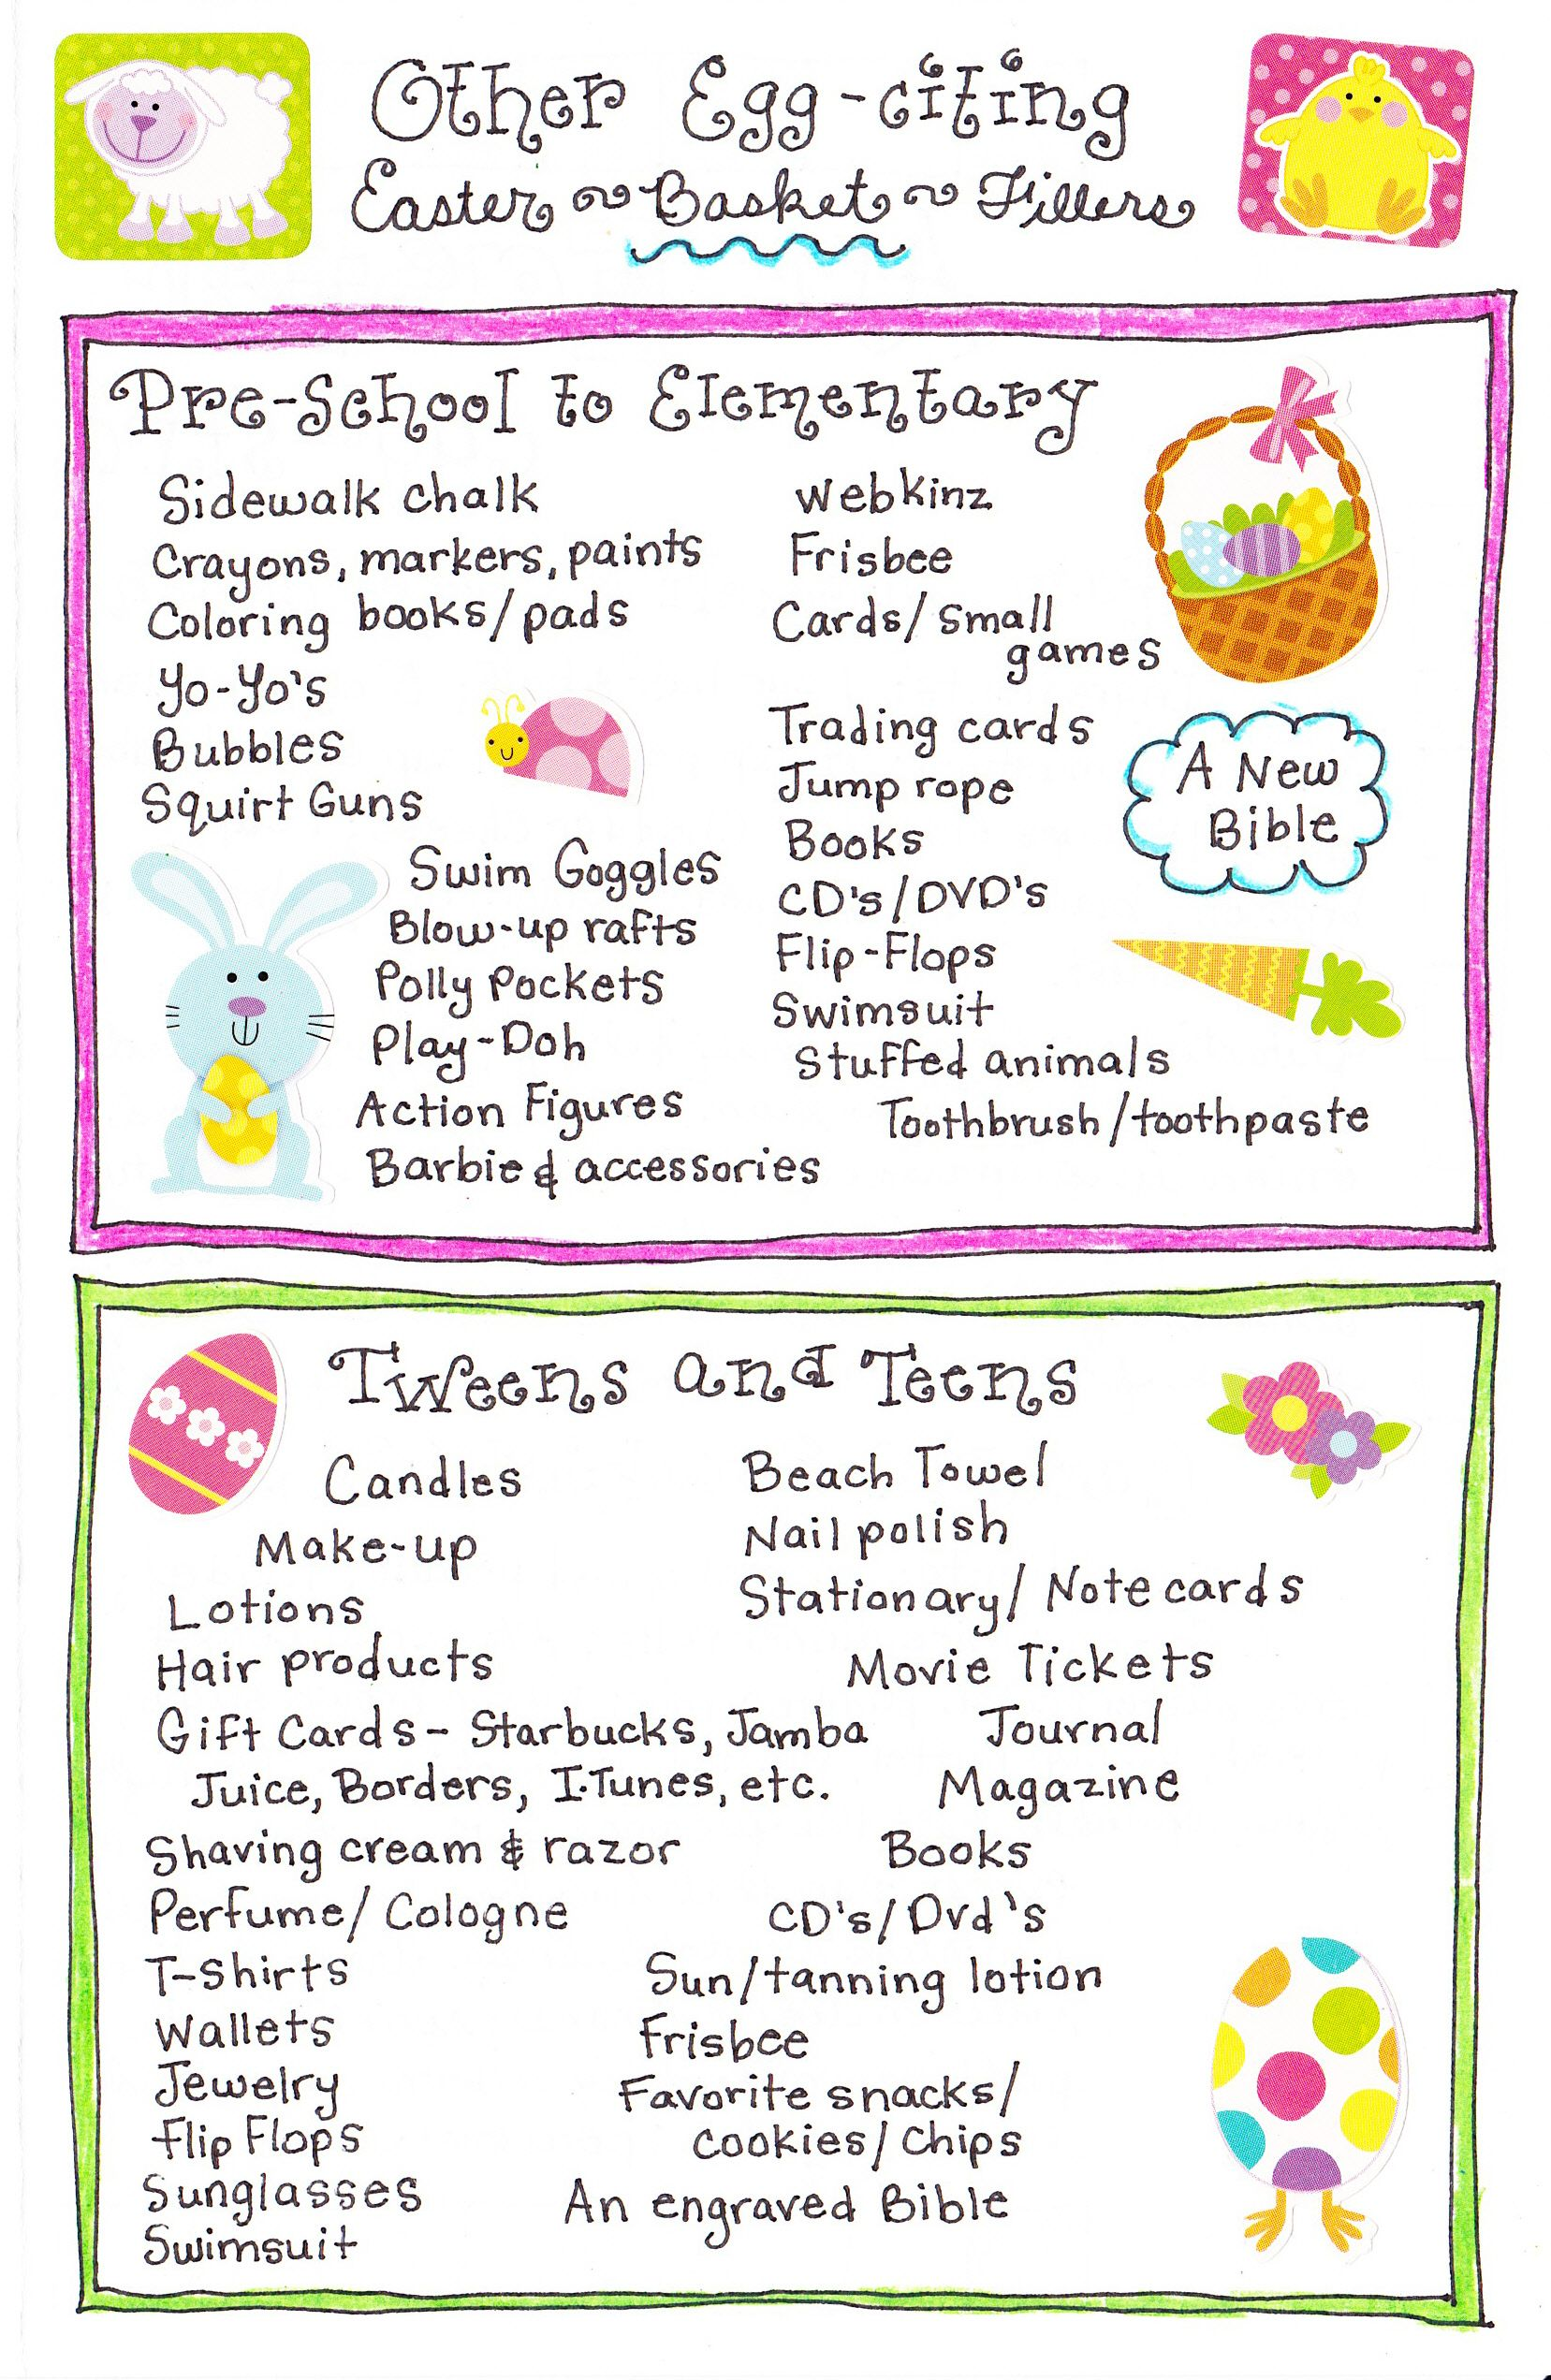 Easter basket filler ideas basket ideas easter baskets and easter easter basket filler ideas prek and elementary list and tweens and teens list negle Choice Image